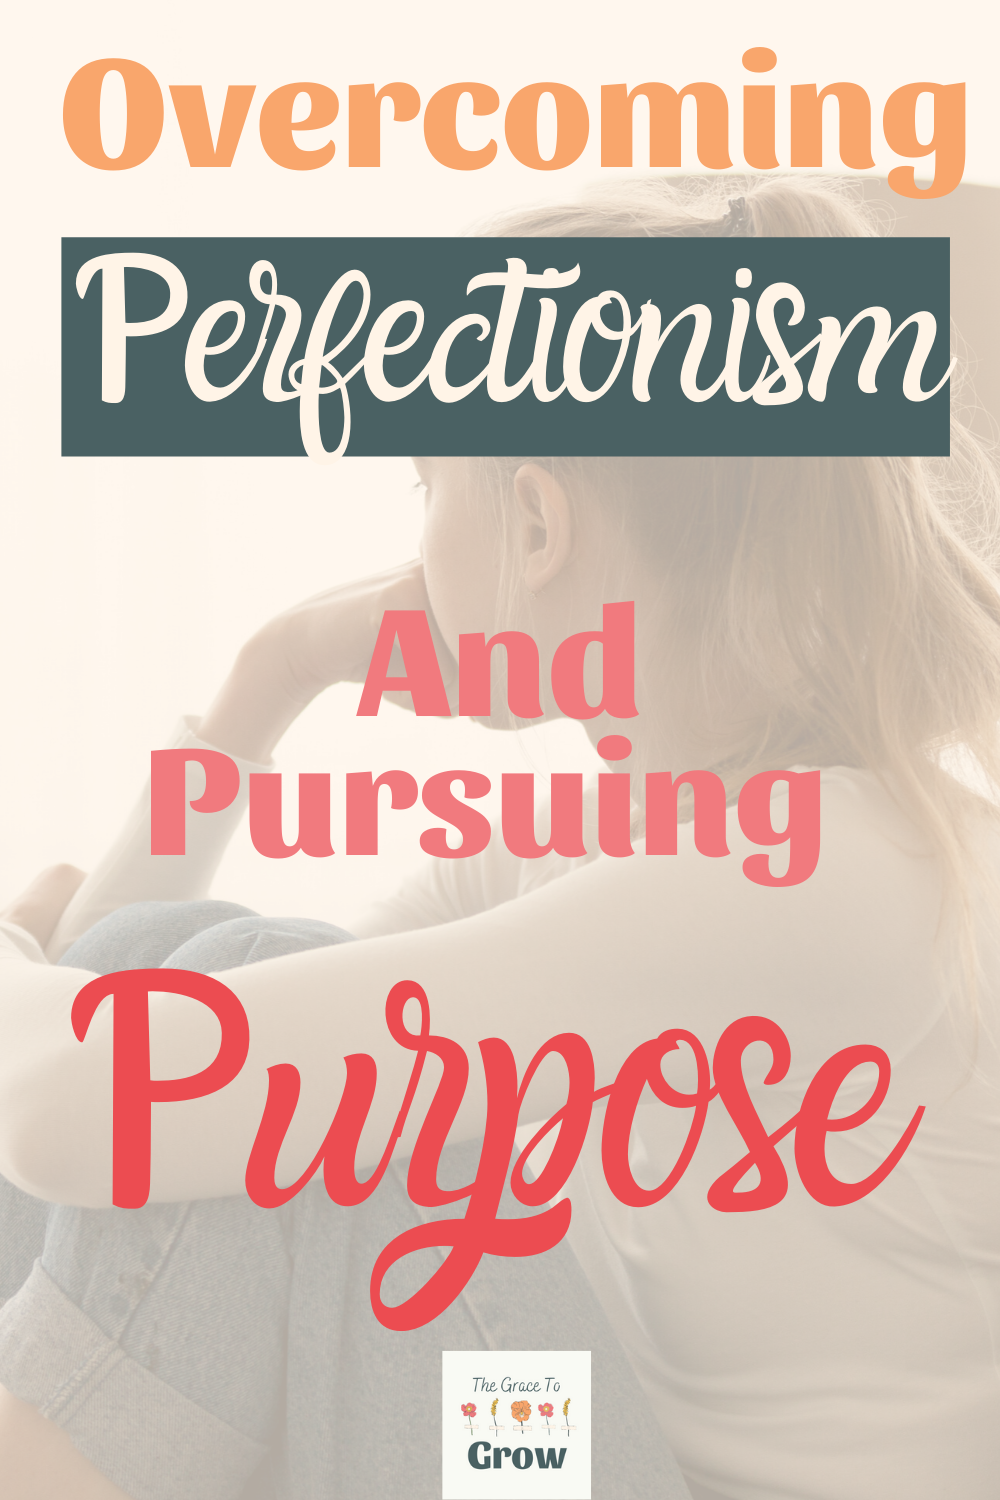 overcoming-perfectionism-and-pursuing-purpose--pinterest-pin